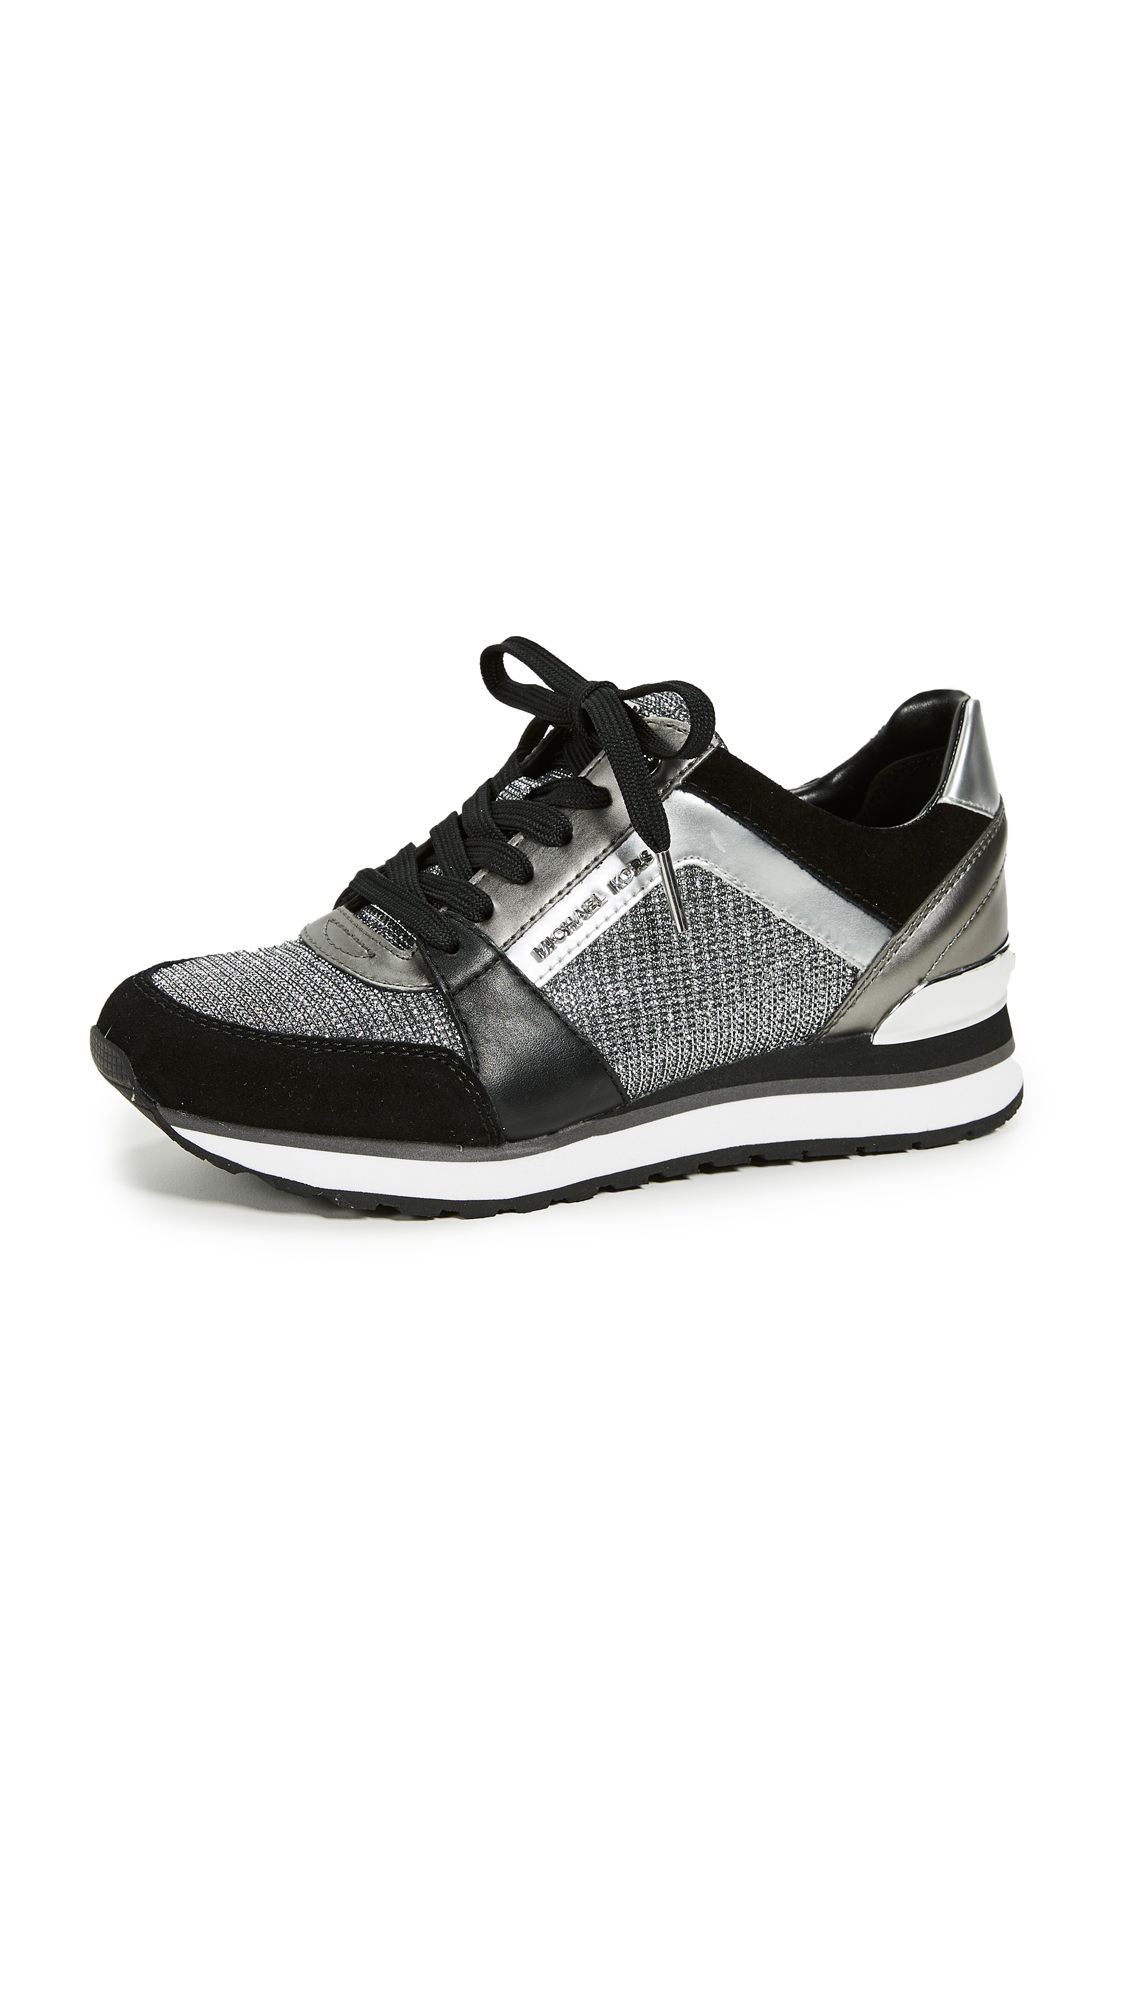 MICHAEL Michael Kors Billie Trainers - Black/Silver